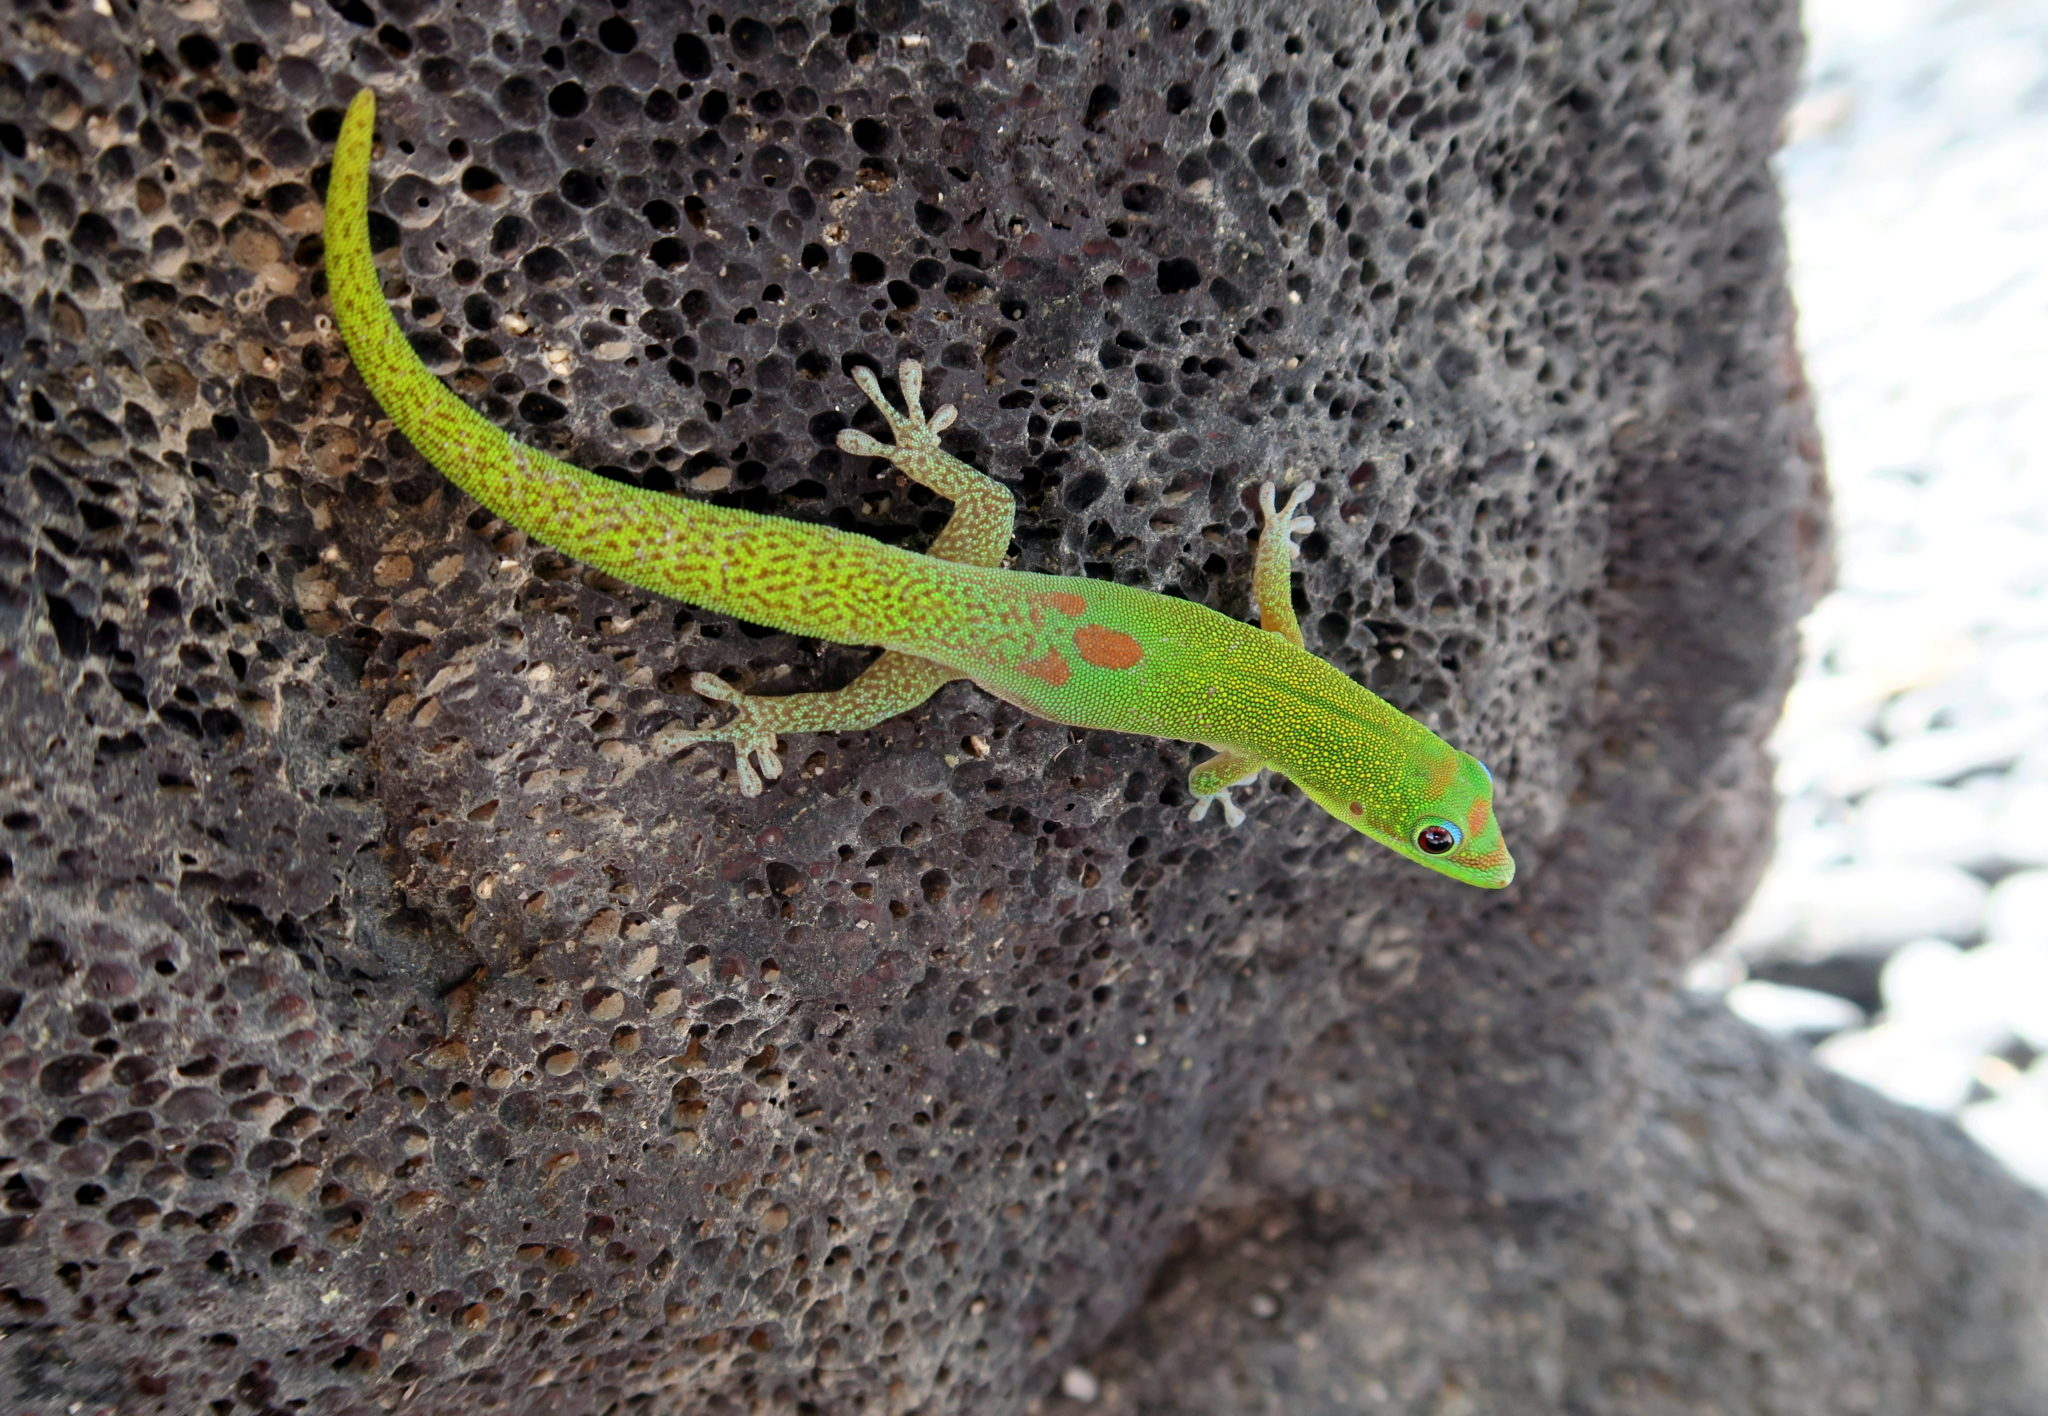 Lizard Honaunau National Historical Park Big Island Hawaii